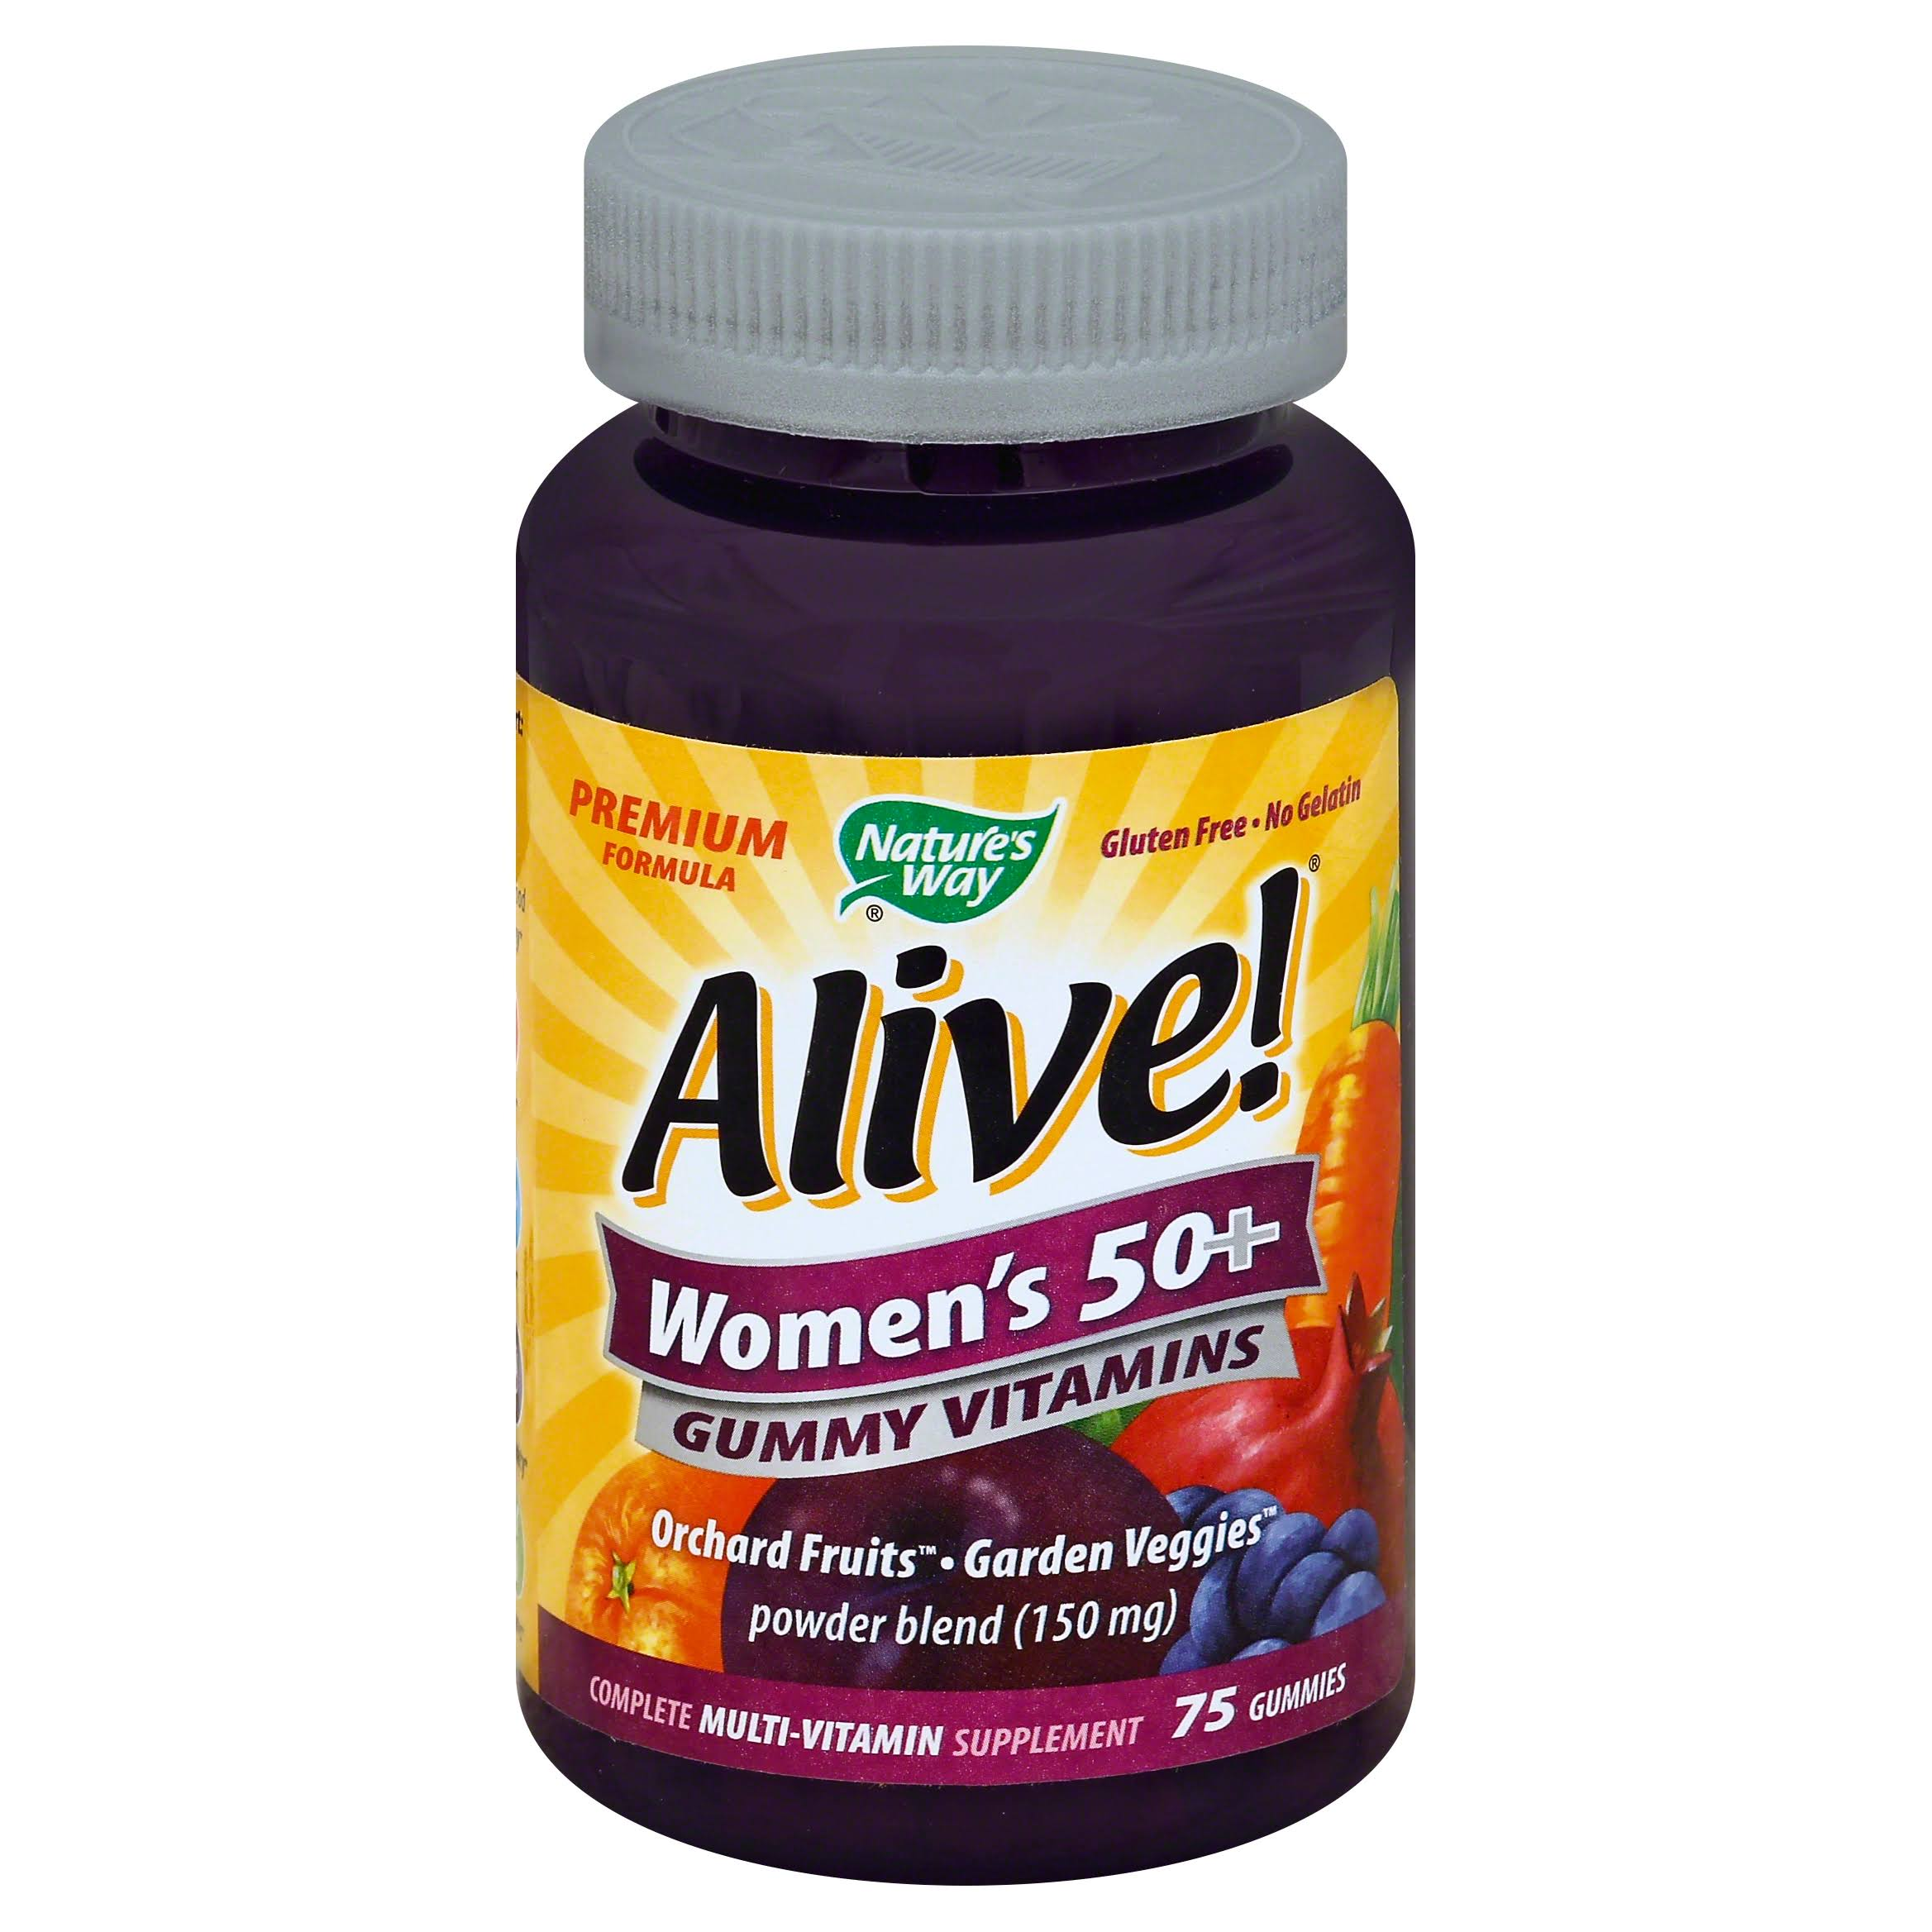 Nature's Way Alive Women's 50 Plus Gummy Multi-Vitamins - Chewables, 75 Count